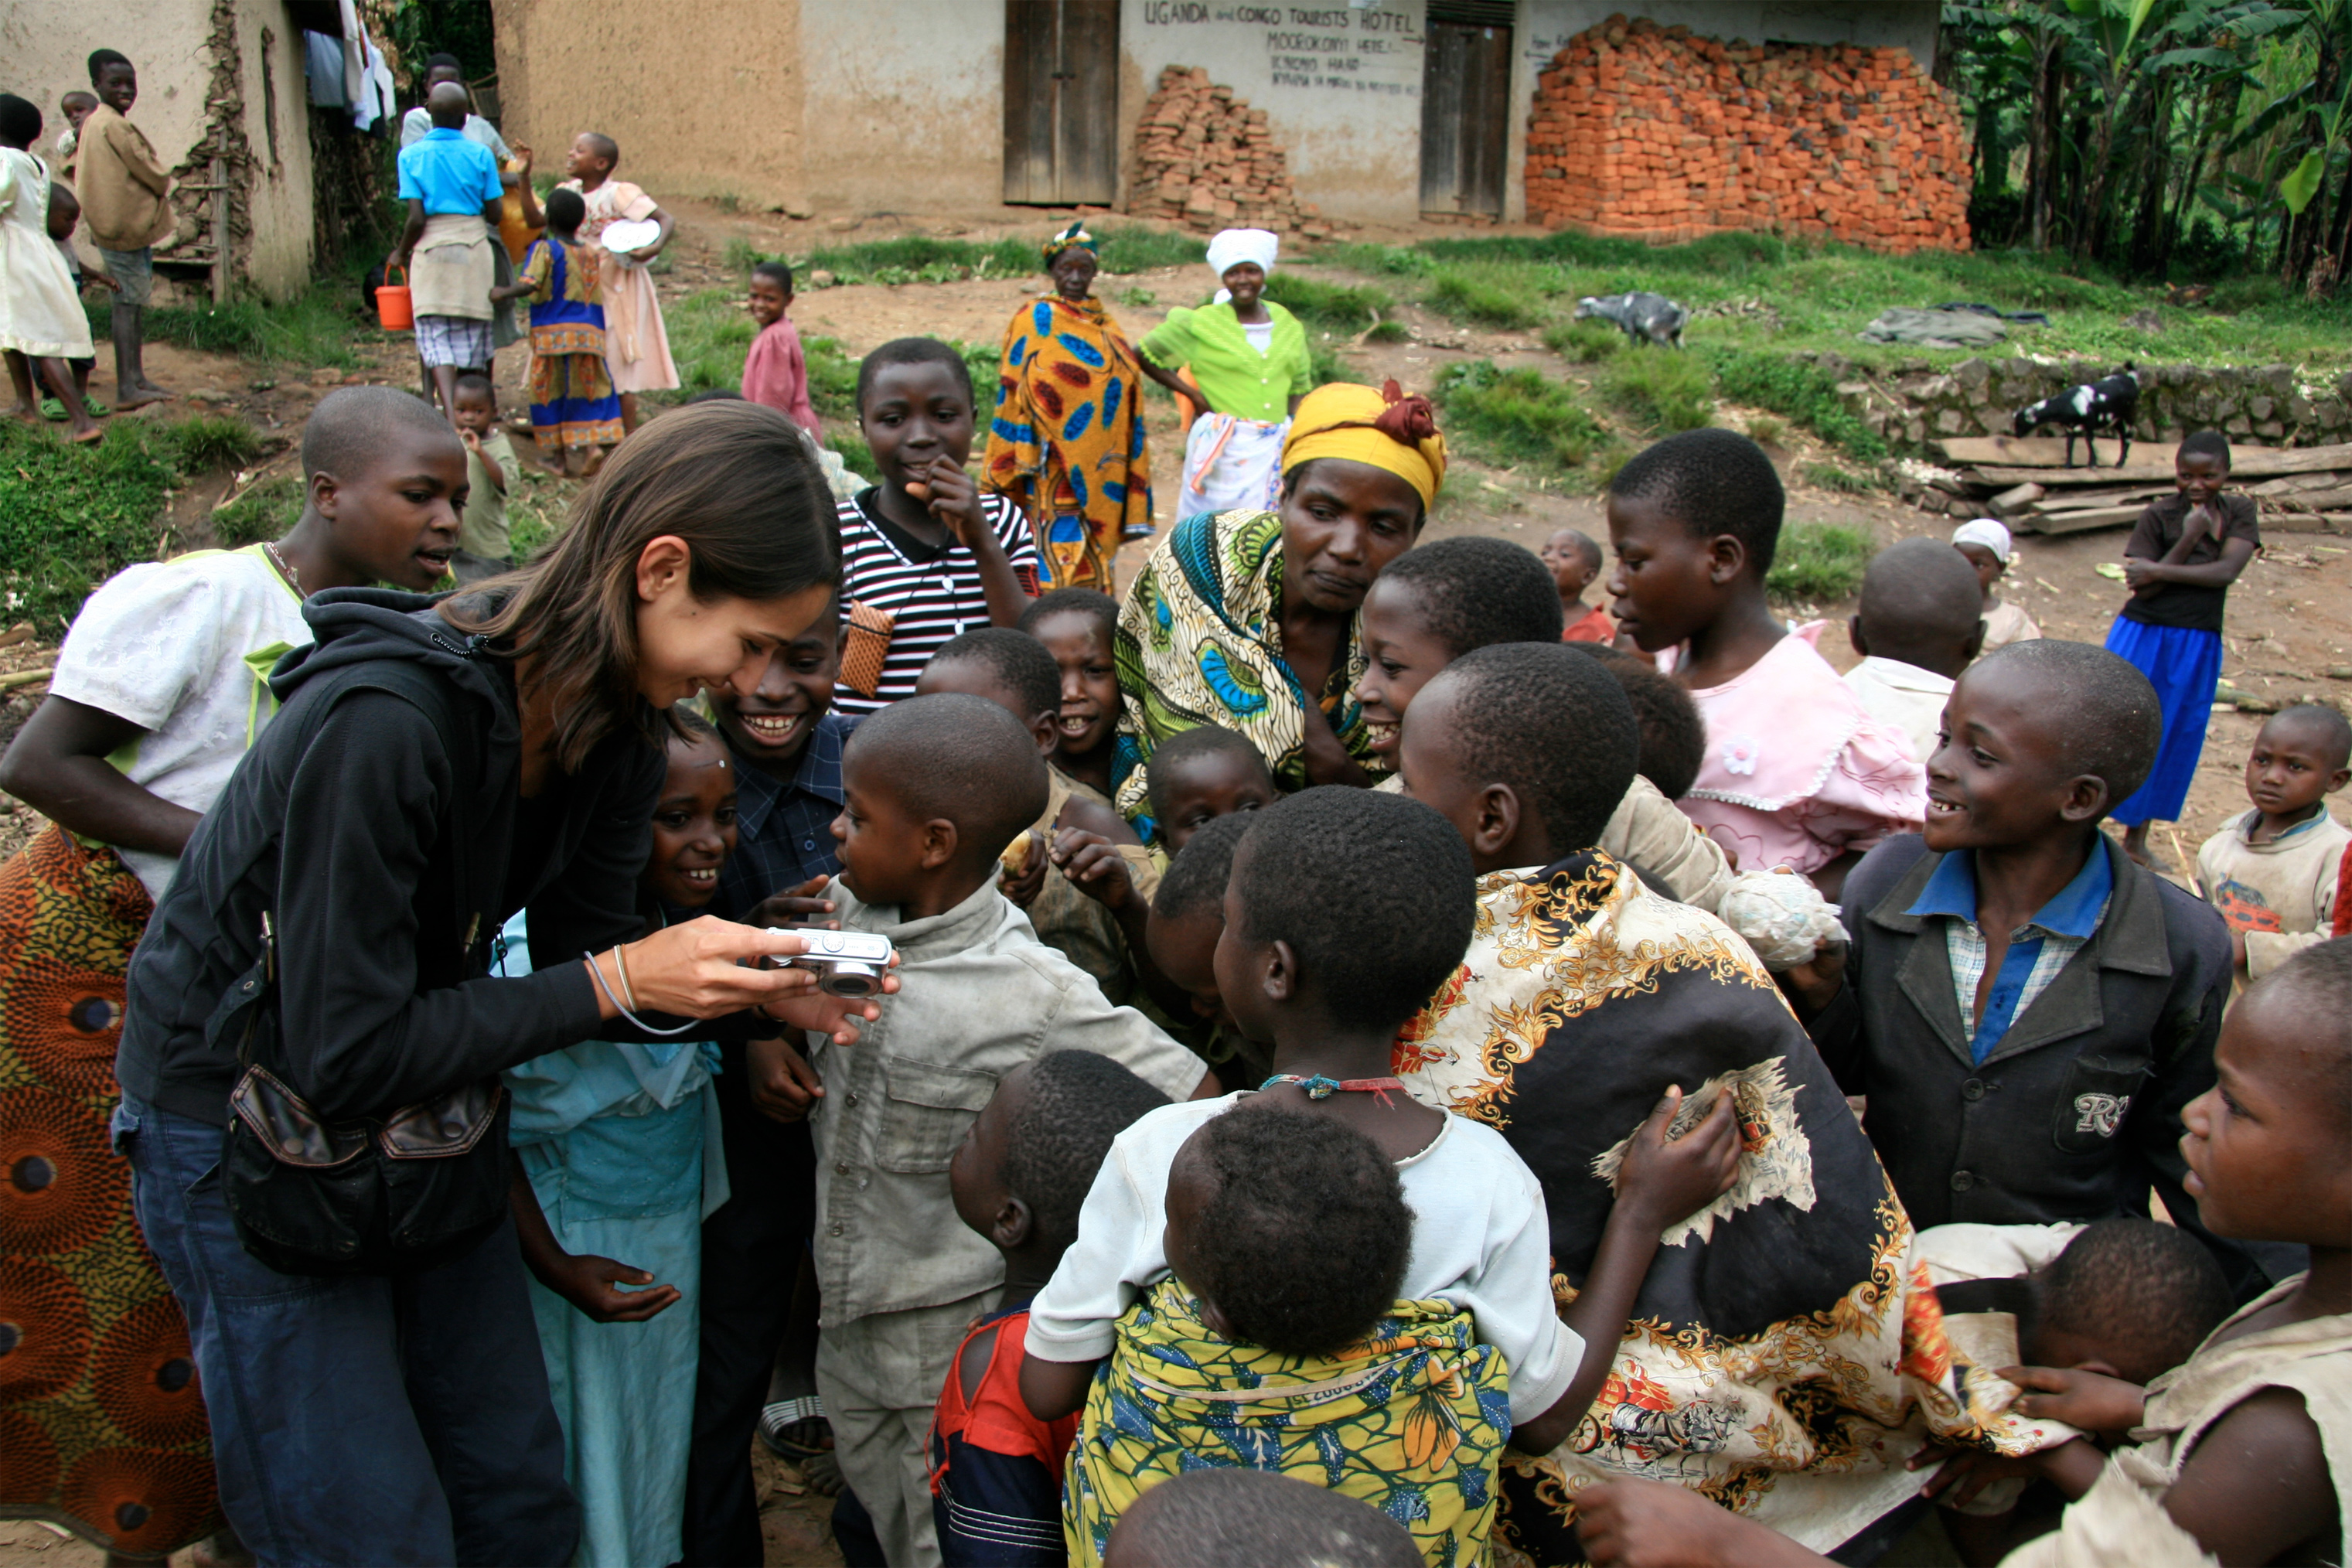 volunteer showing content to refugee children in Congo.